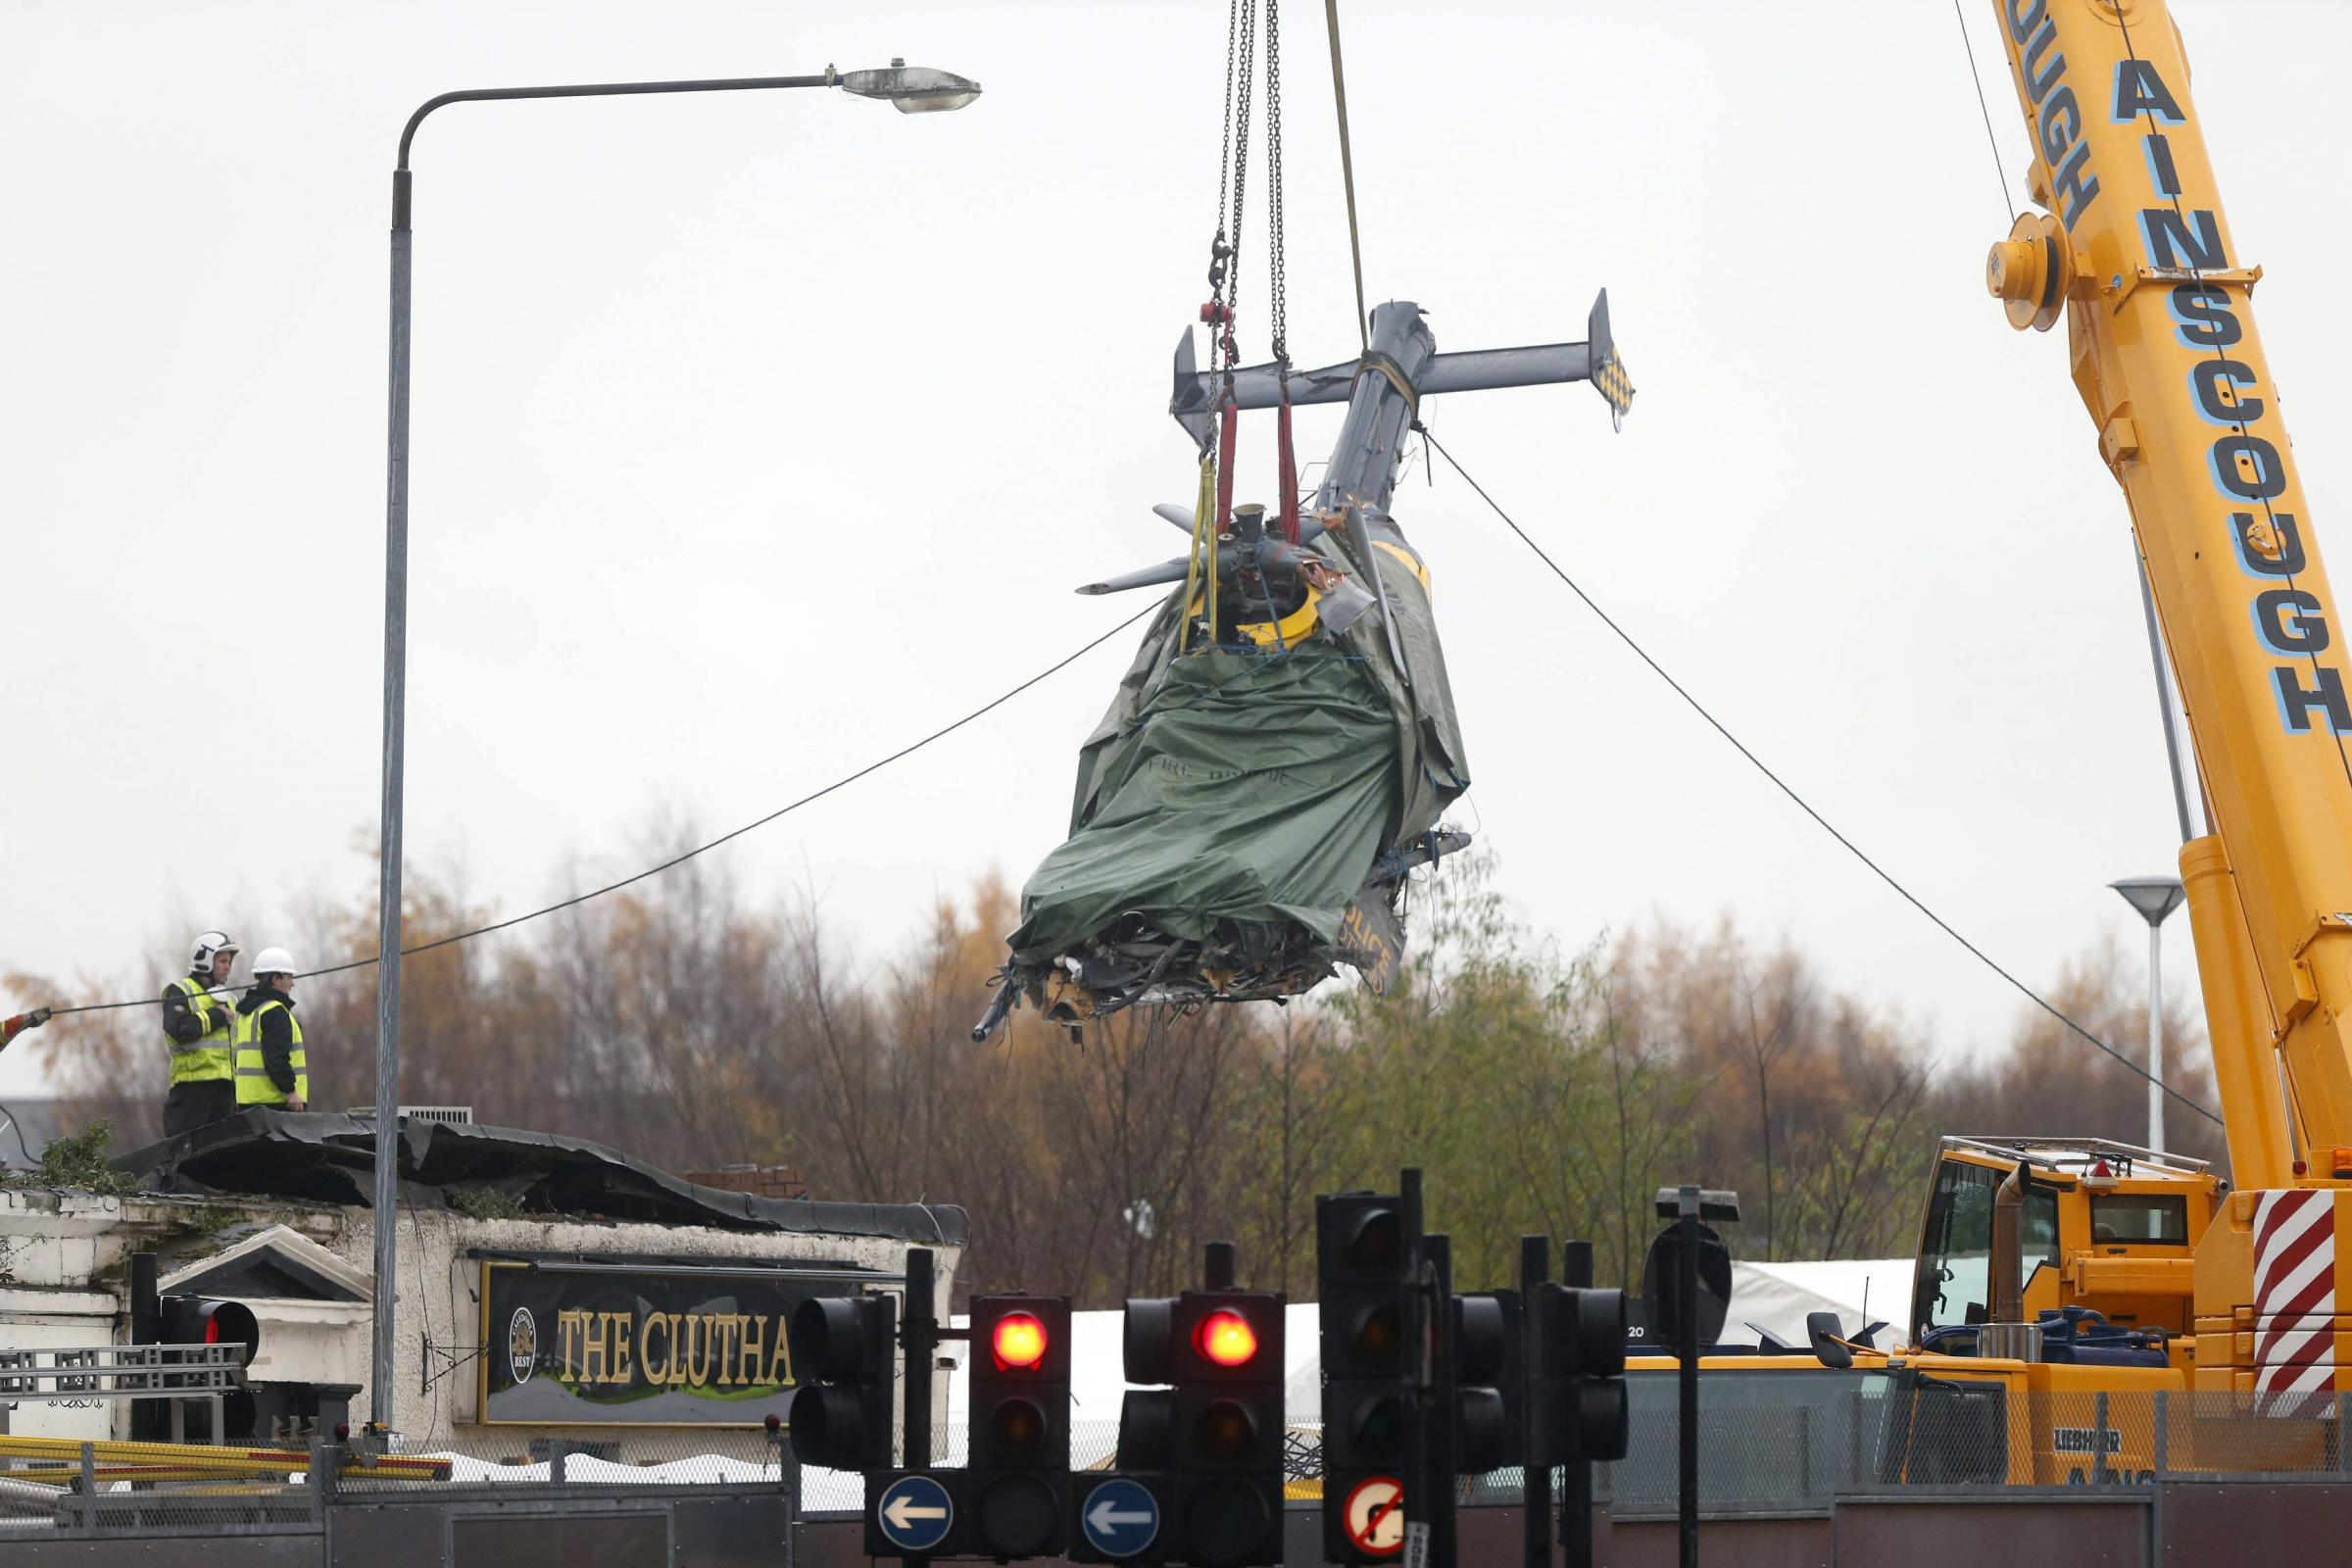 Clutha inquiry: Helicopter pilot was a 'stickler for procedure'